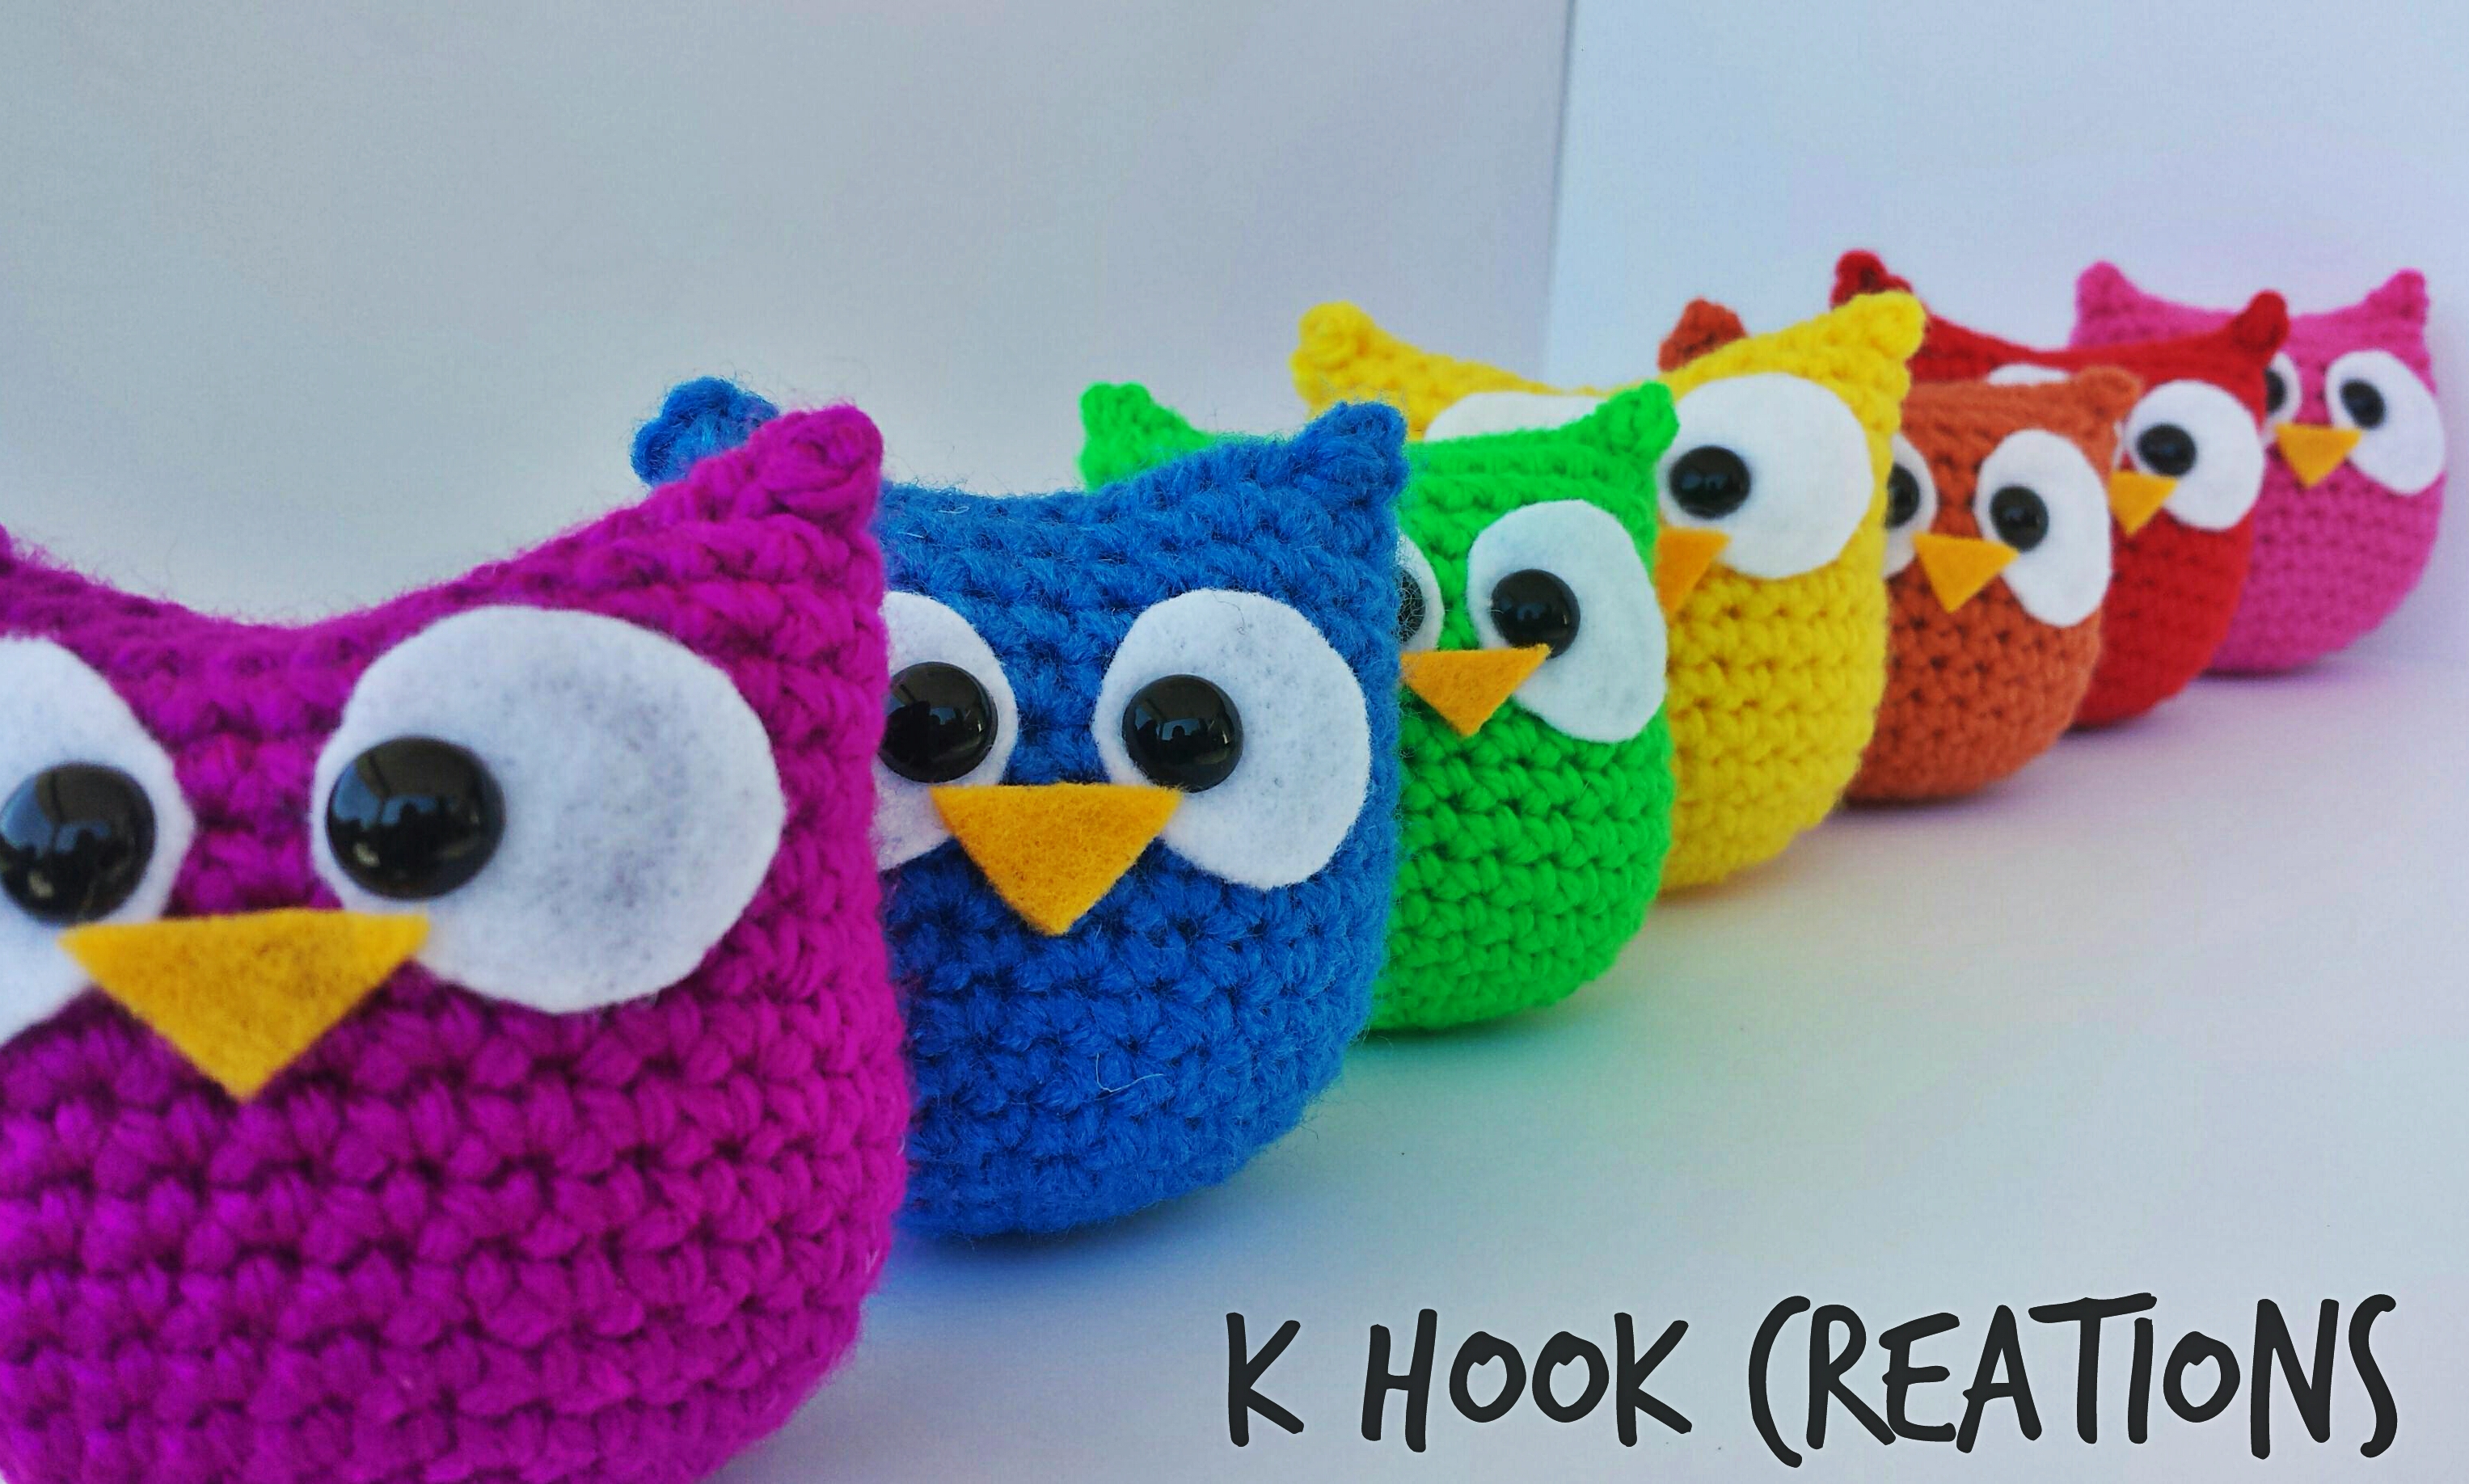 Crochet Owl Pattern - K Hook Creations